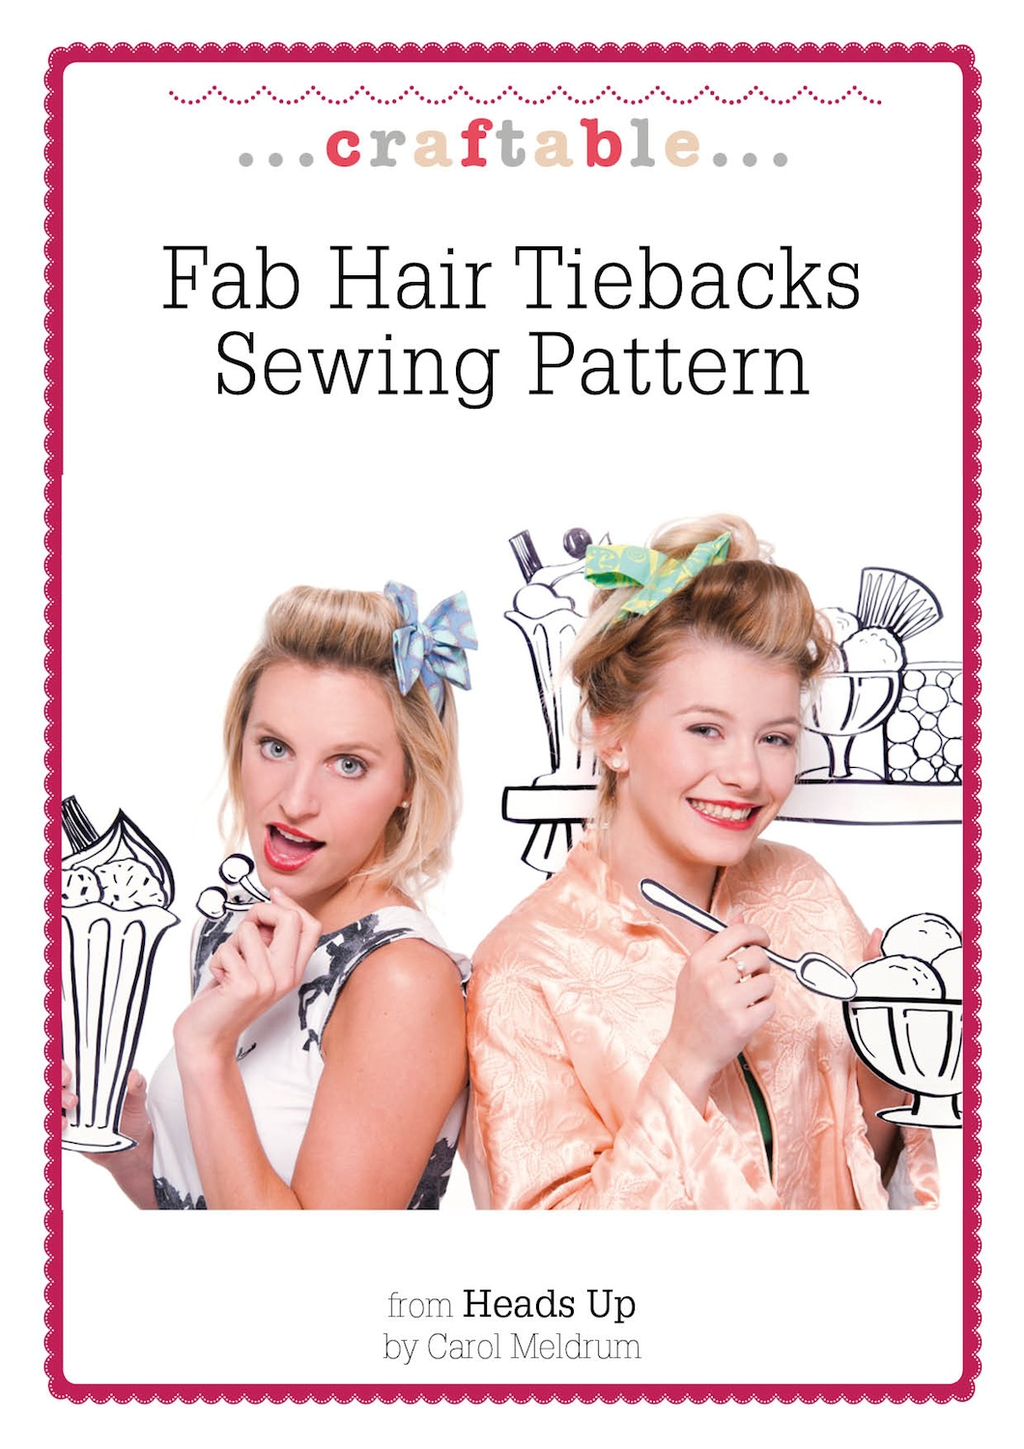 Fab Hair Tiebacks Sewing Pattern By: Carol Meldrum